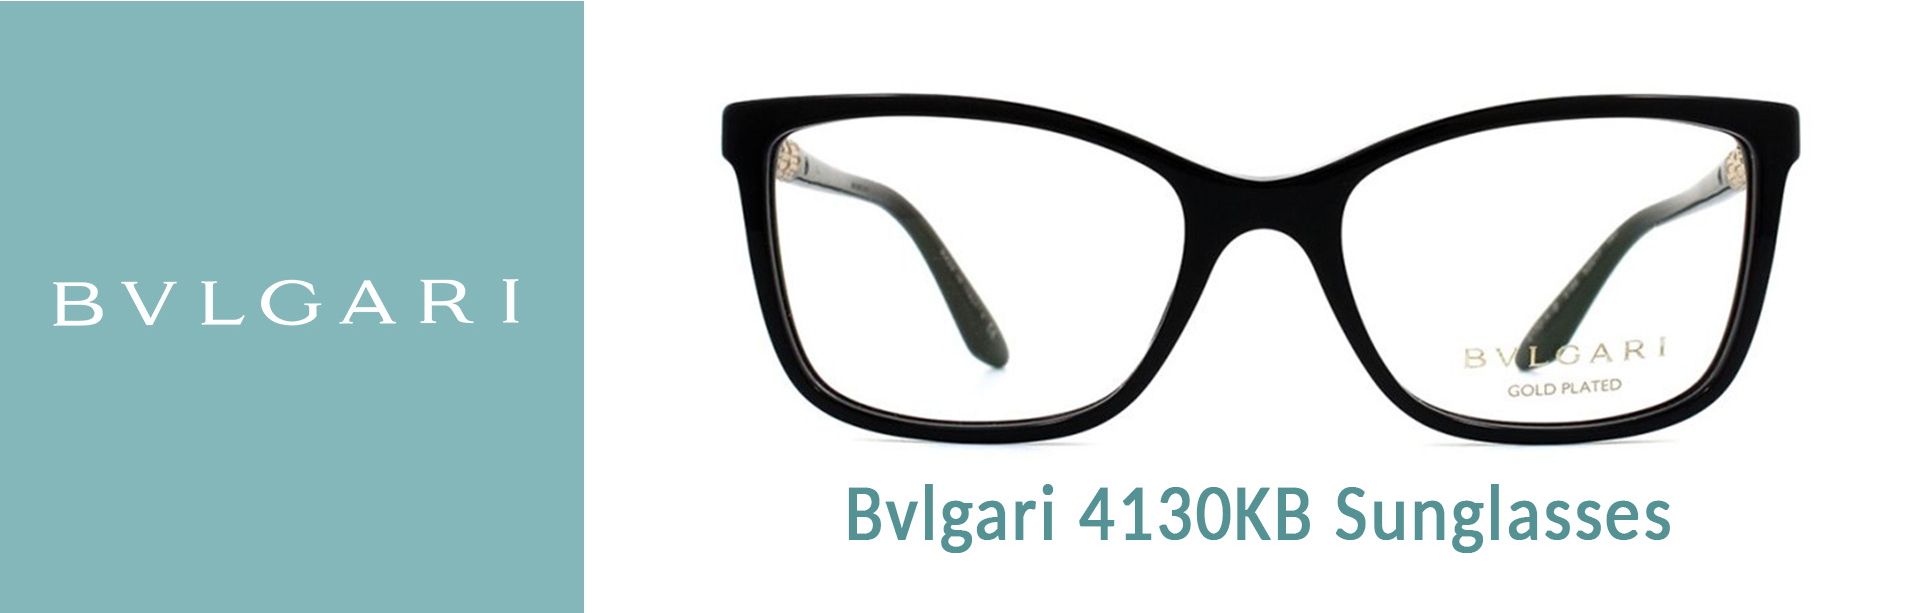 Bvlgari 4130KB Glasses Top Banner for In Focus Blog | EyeWearThese.com